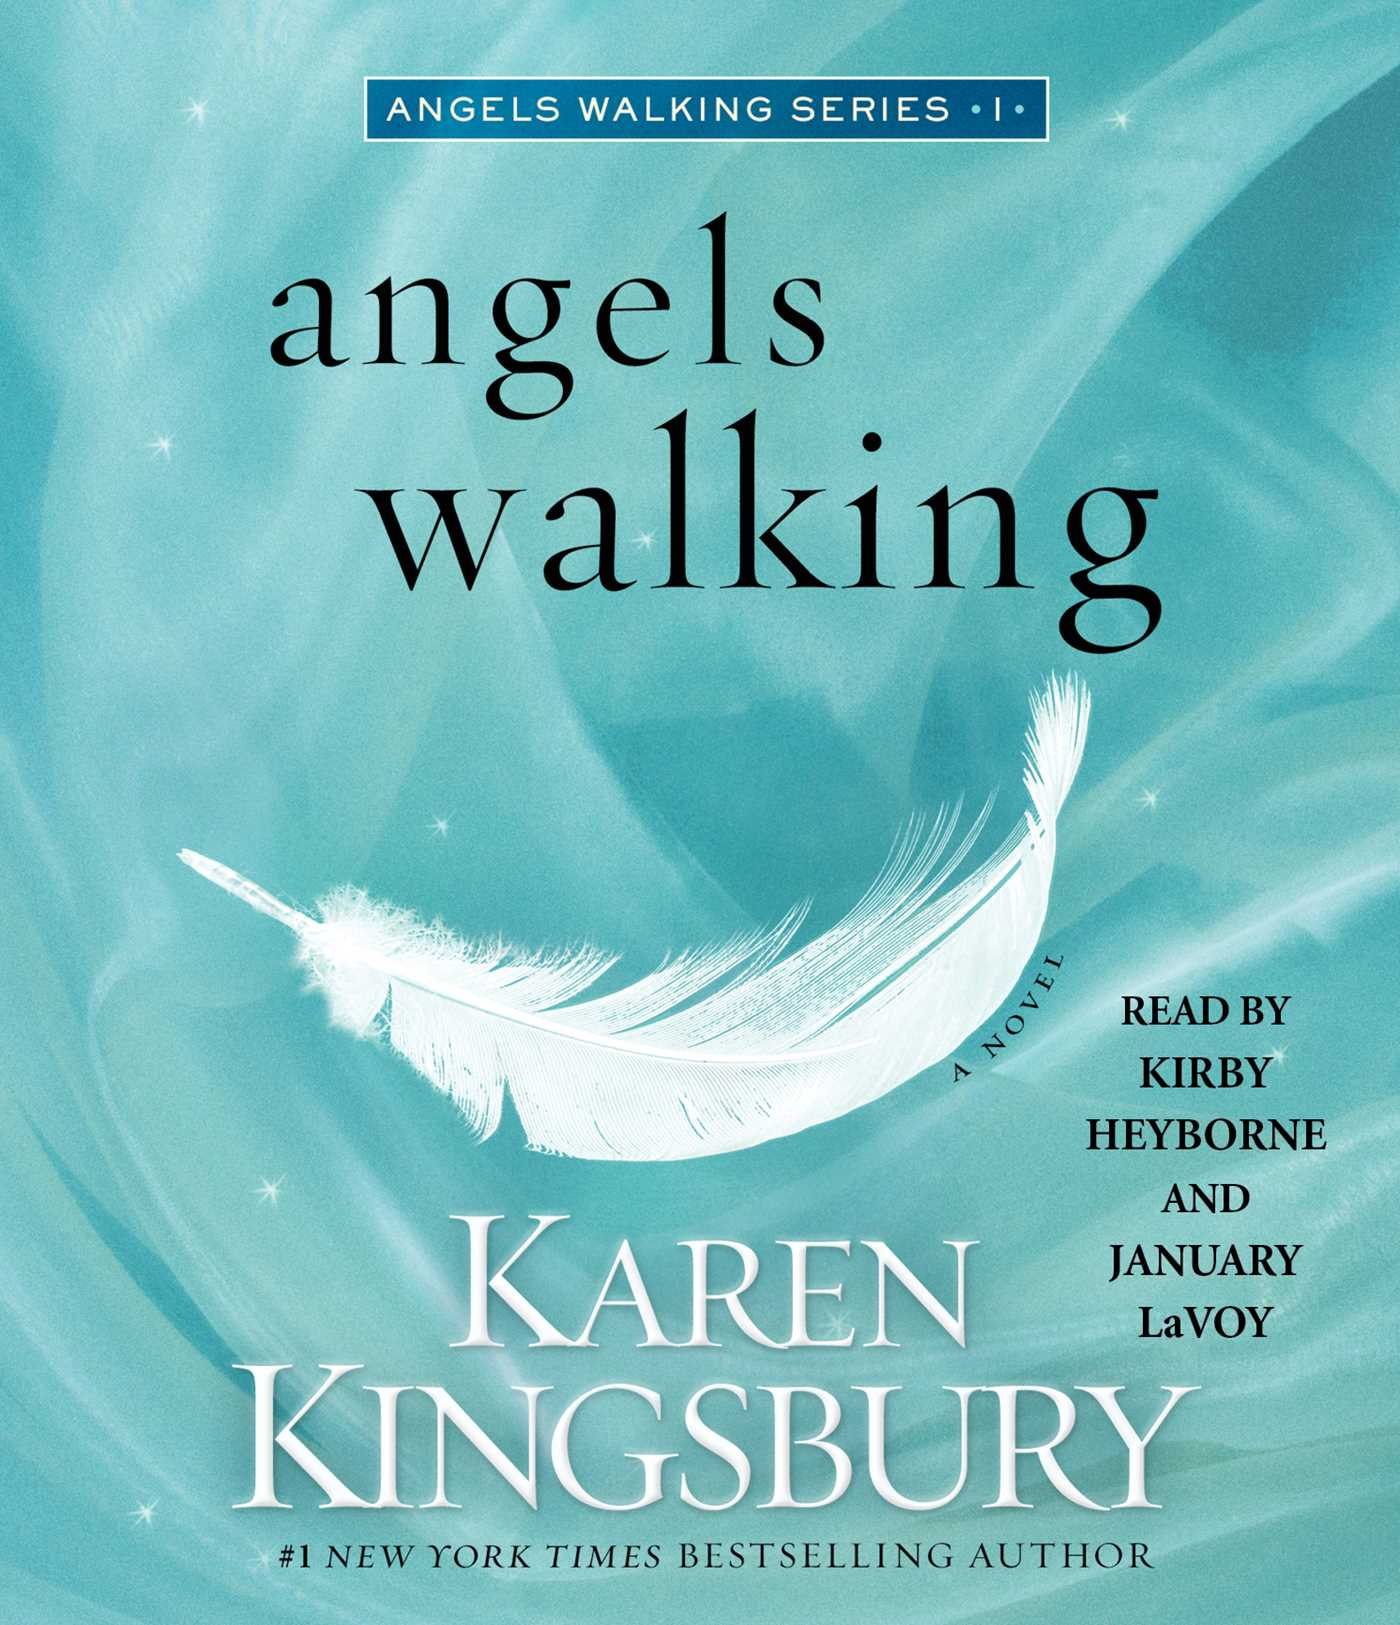 Angels-walking-9781442372726_hr